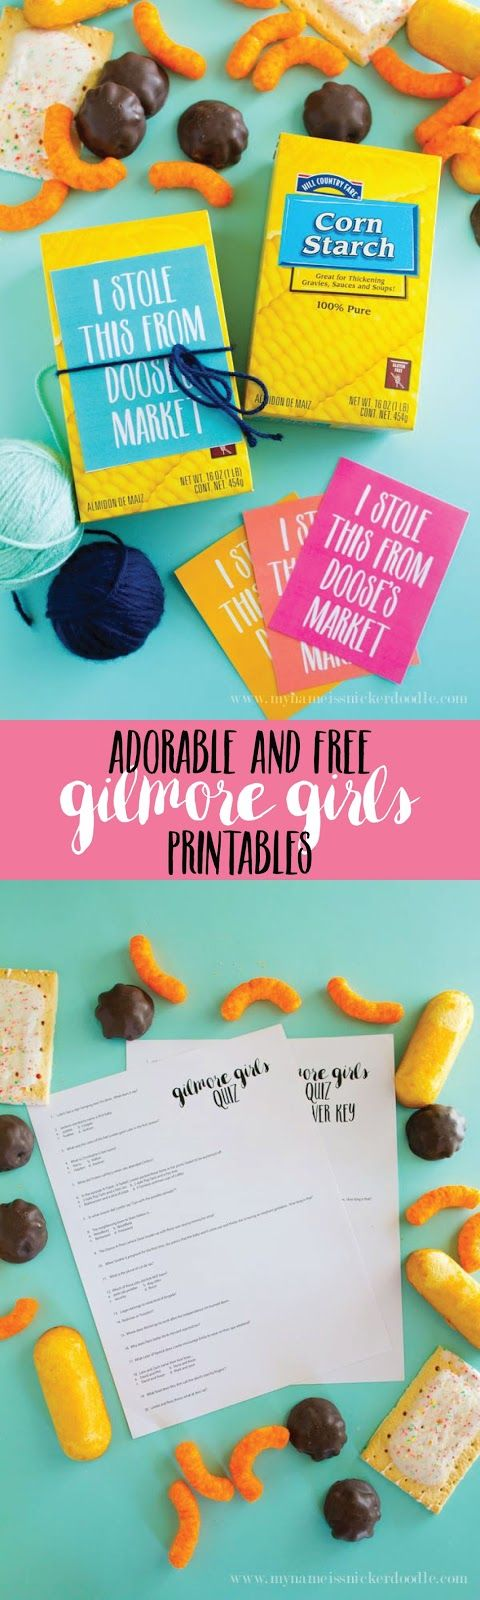 Calling all Gilmore Girls fans!  These free printables are just for you!  Plus a fun quiz!